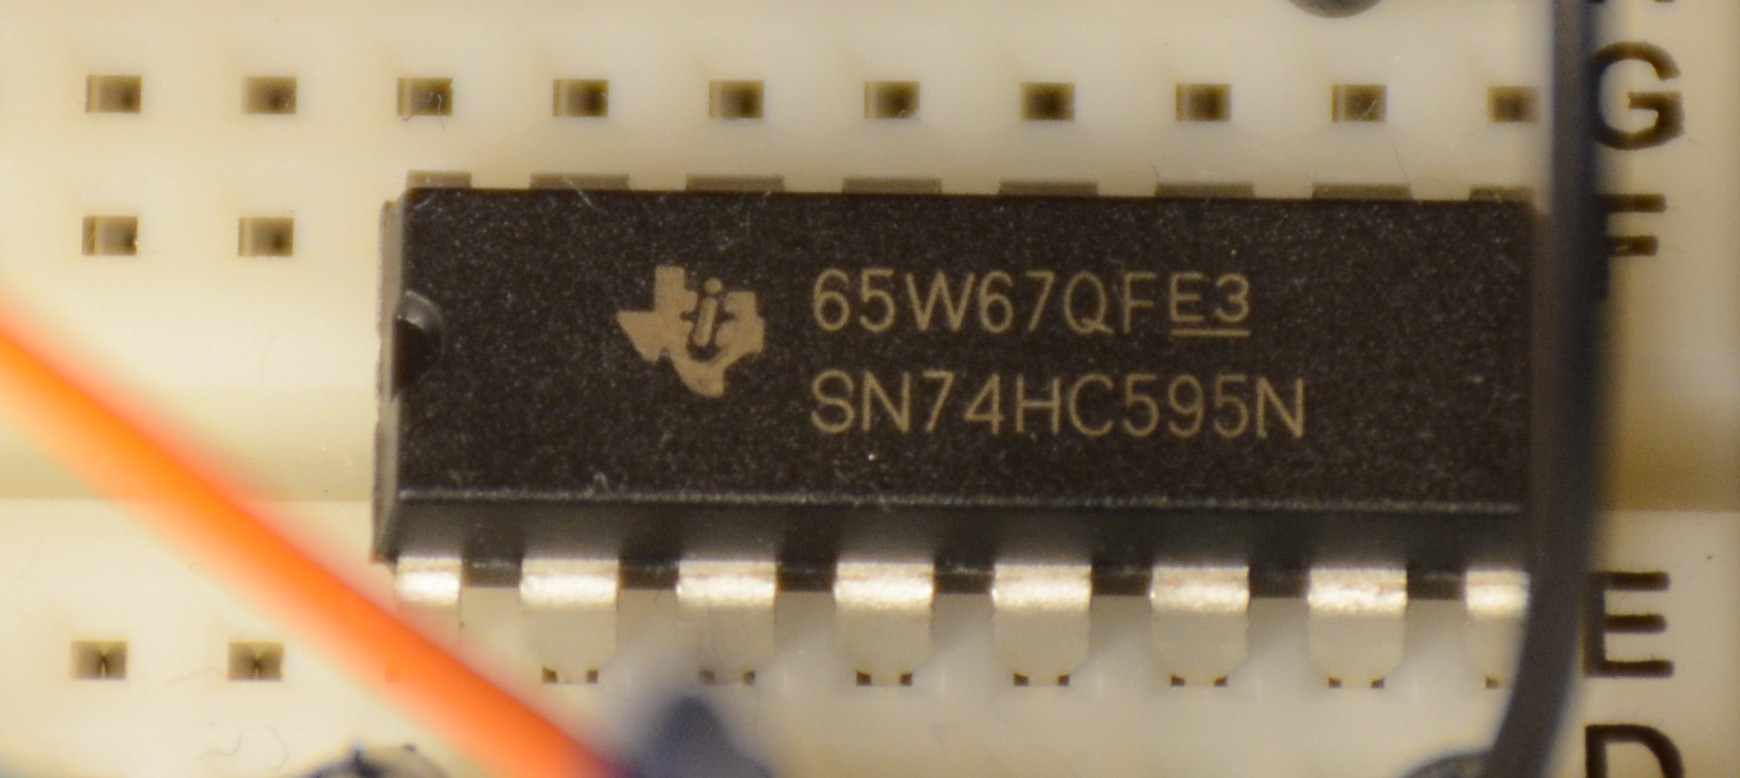 Using A 74hc595 To Control Led Matrix Arduino Playground Medium Colorshifting Show Circuit Ledandlightcircuit Setting Up Can Quickly Get You Out Of Pins Do Other Things With Your One Way Overcome This Is Use Shift Register